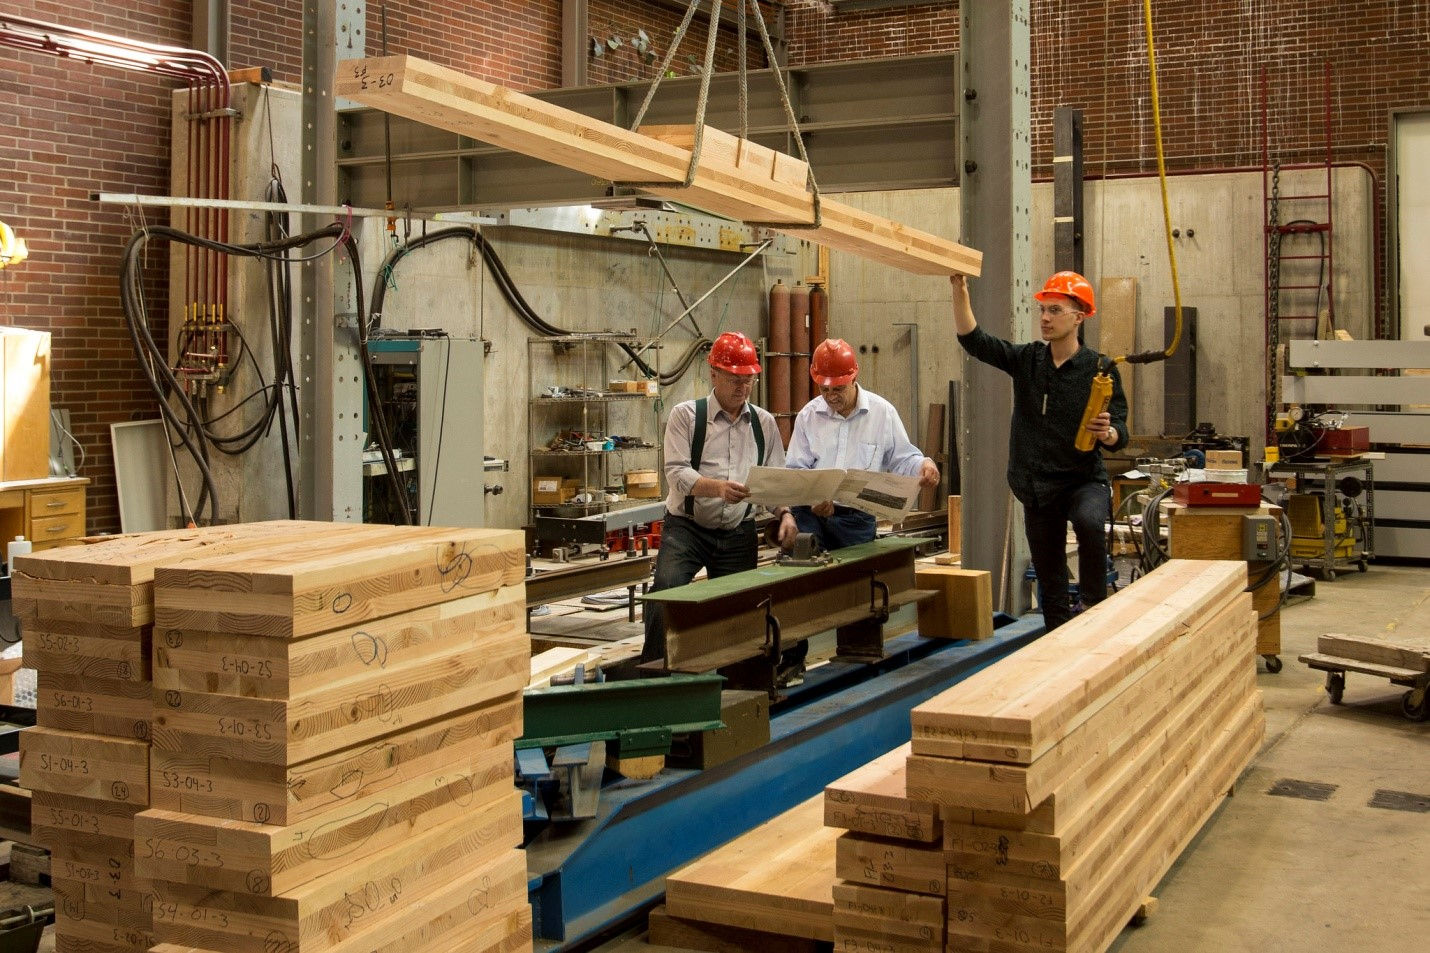 The challenges facing the timber industry